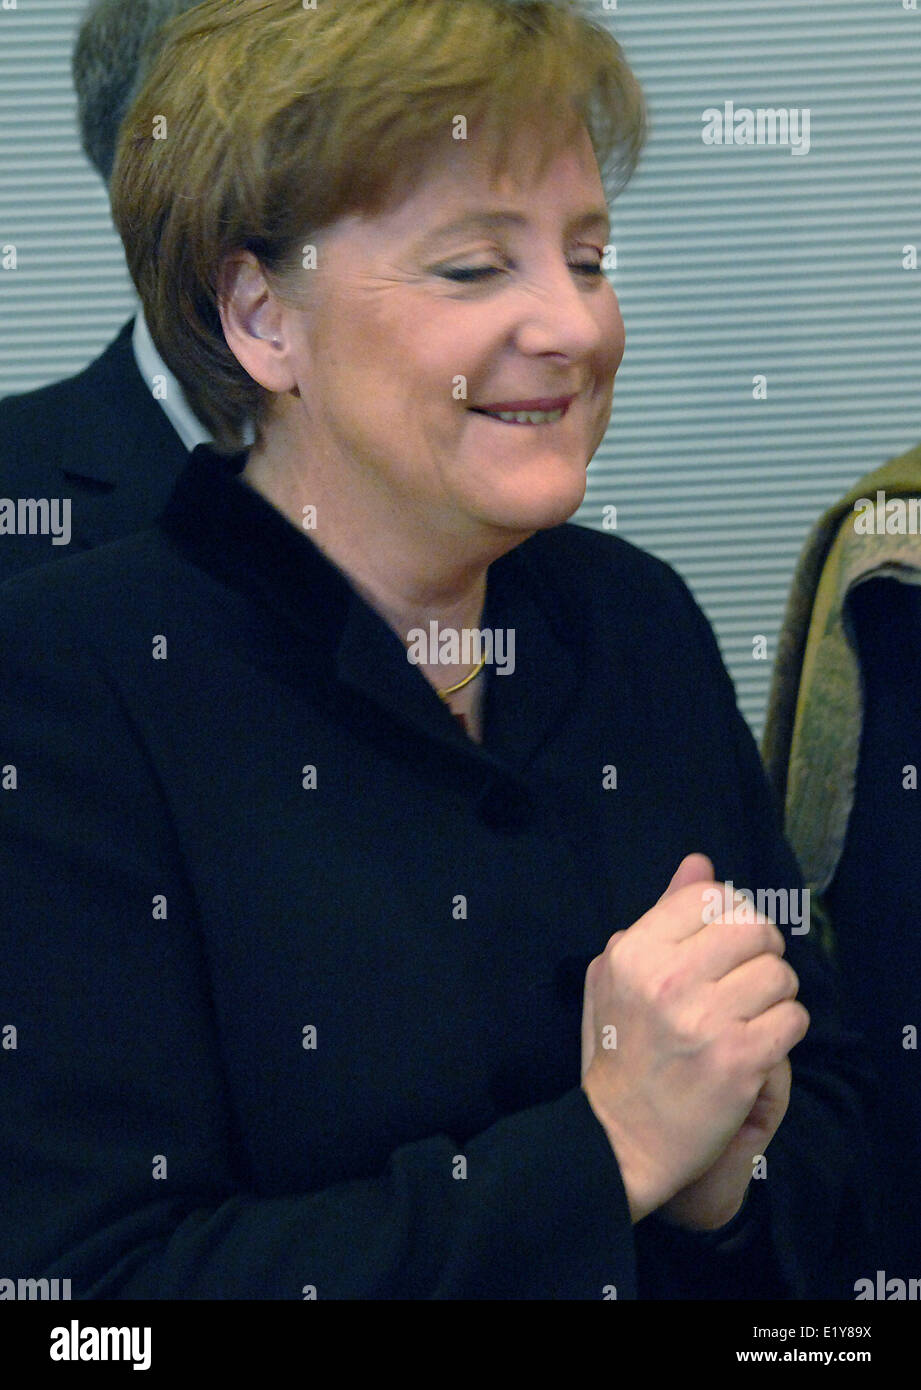 Designated chancellor Angela Merkel (CDU) stands in front of the members of her faction (22.11.2005) and smiles. - Stock Image